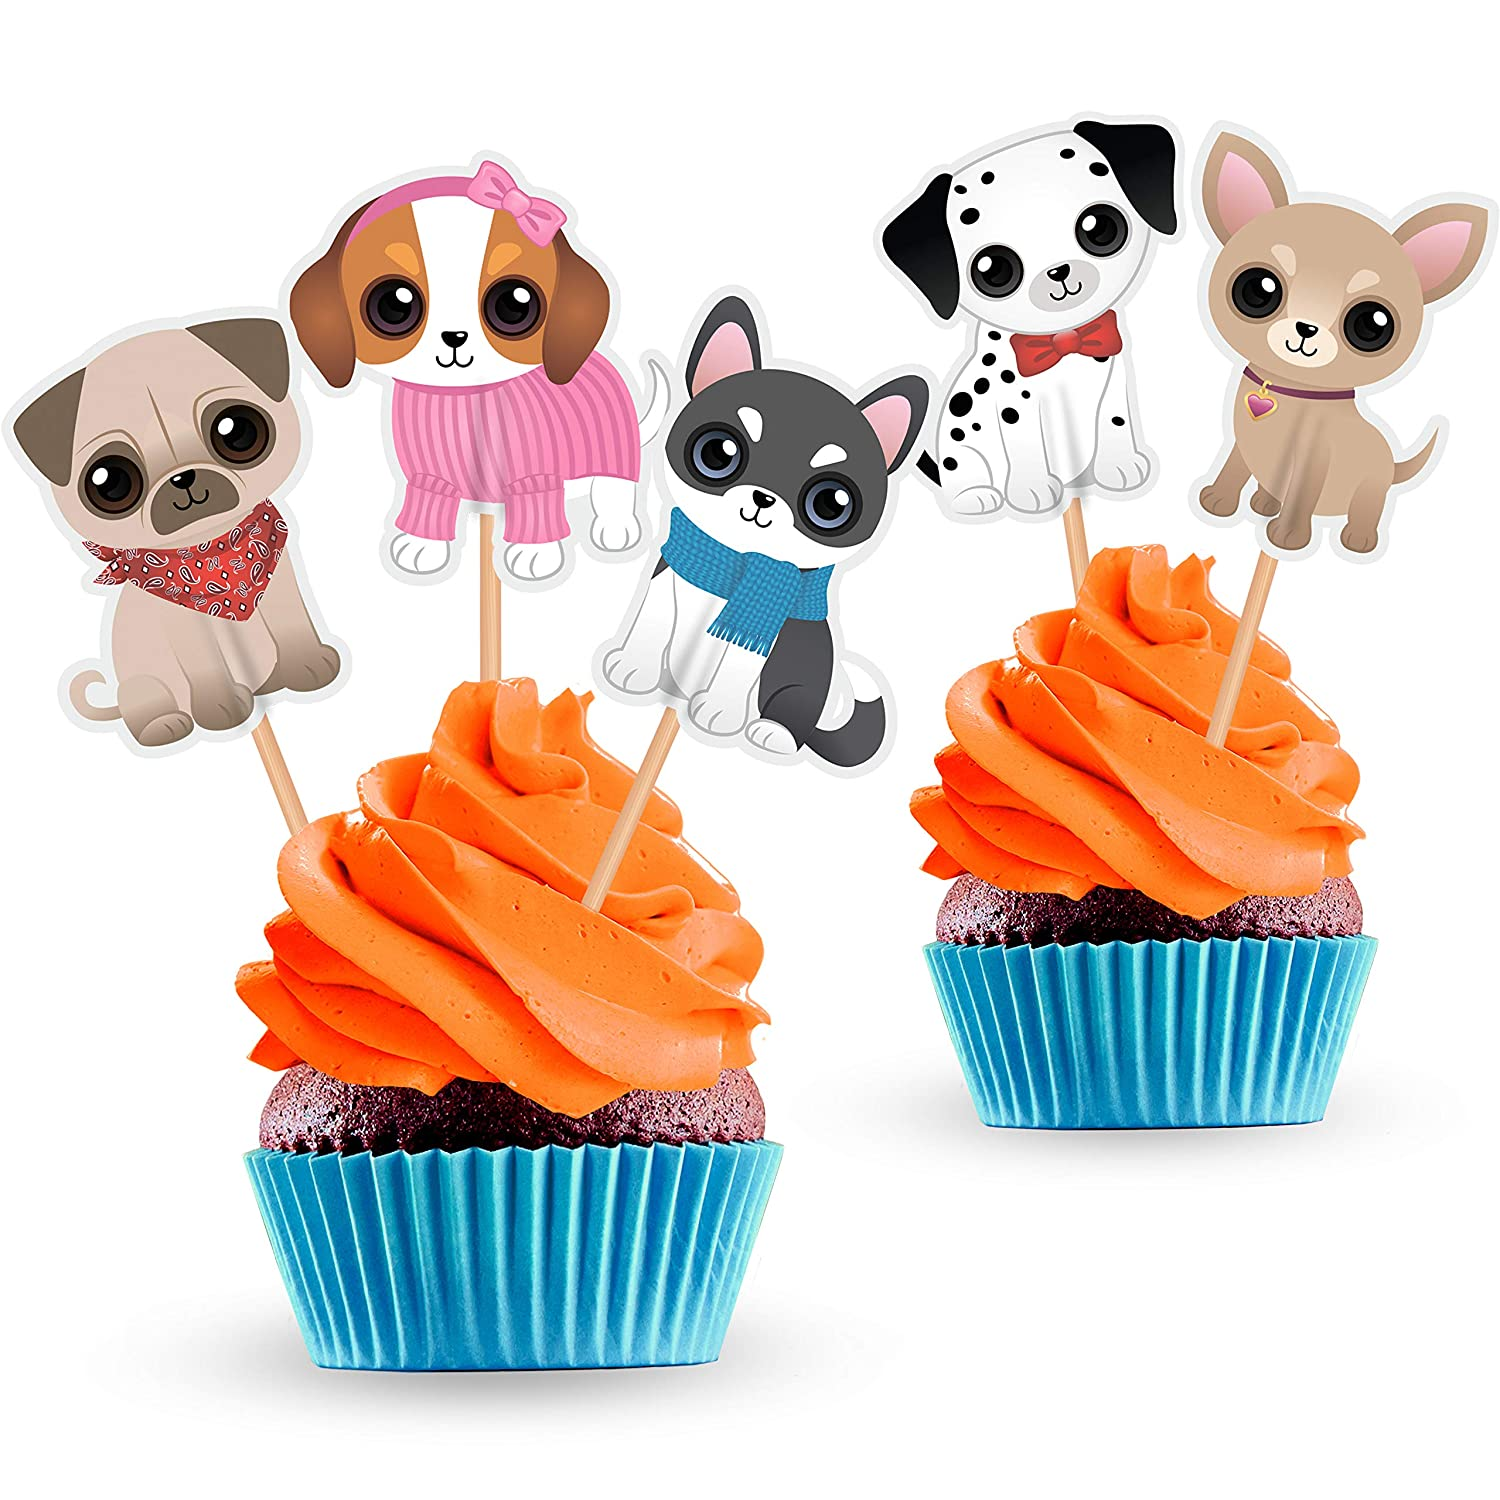 Dog Cupcake Cake Toppers - Puppy Pet Theme Birthday Party Decorations Supplies - 25 PCS